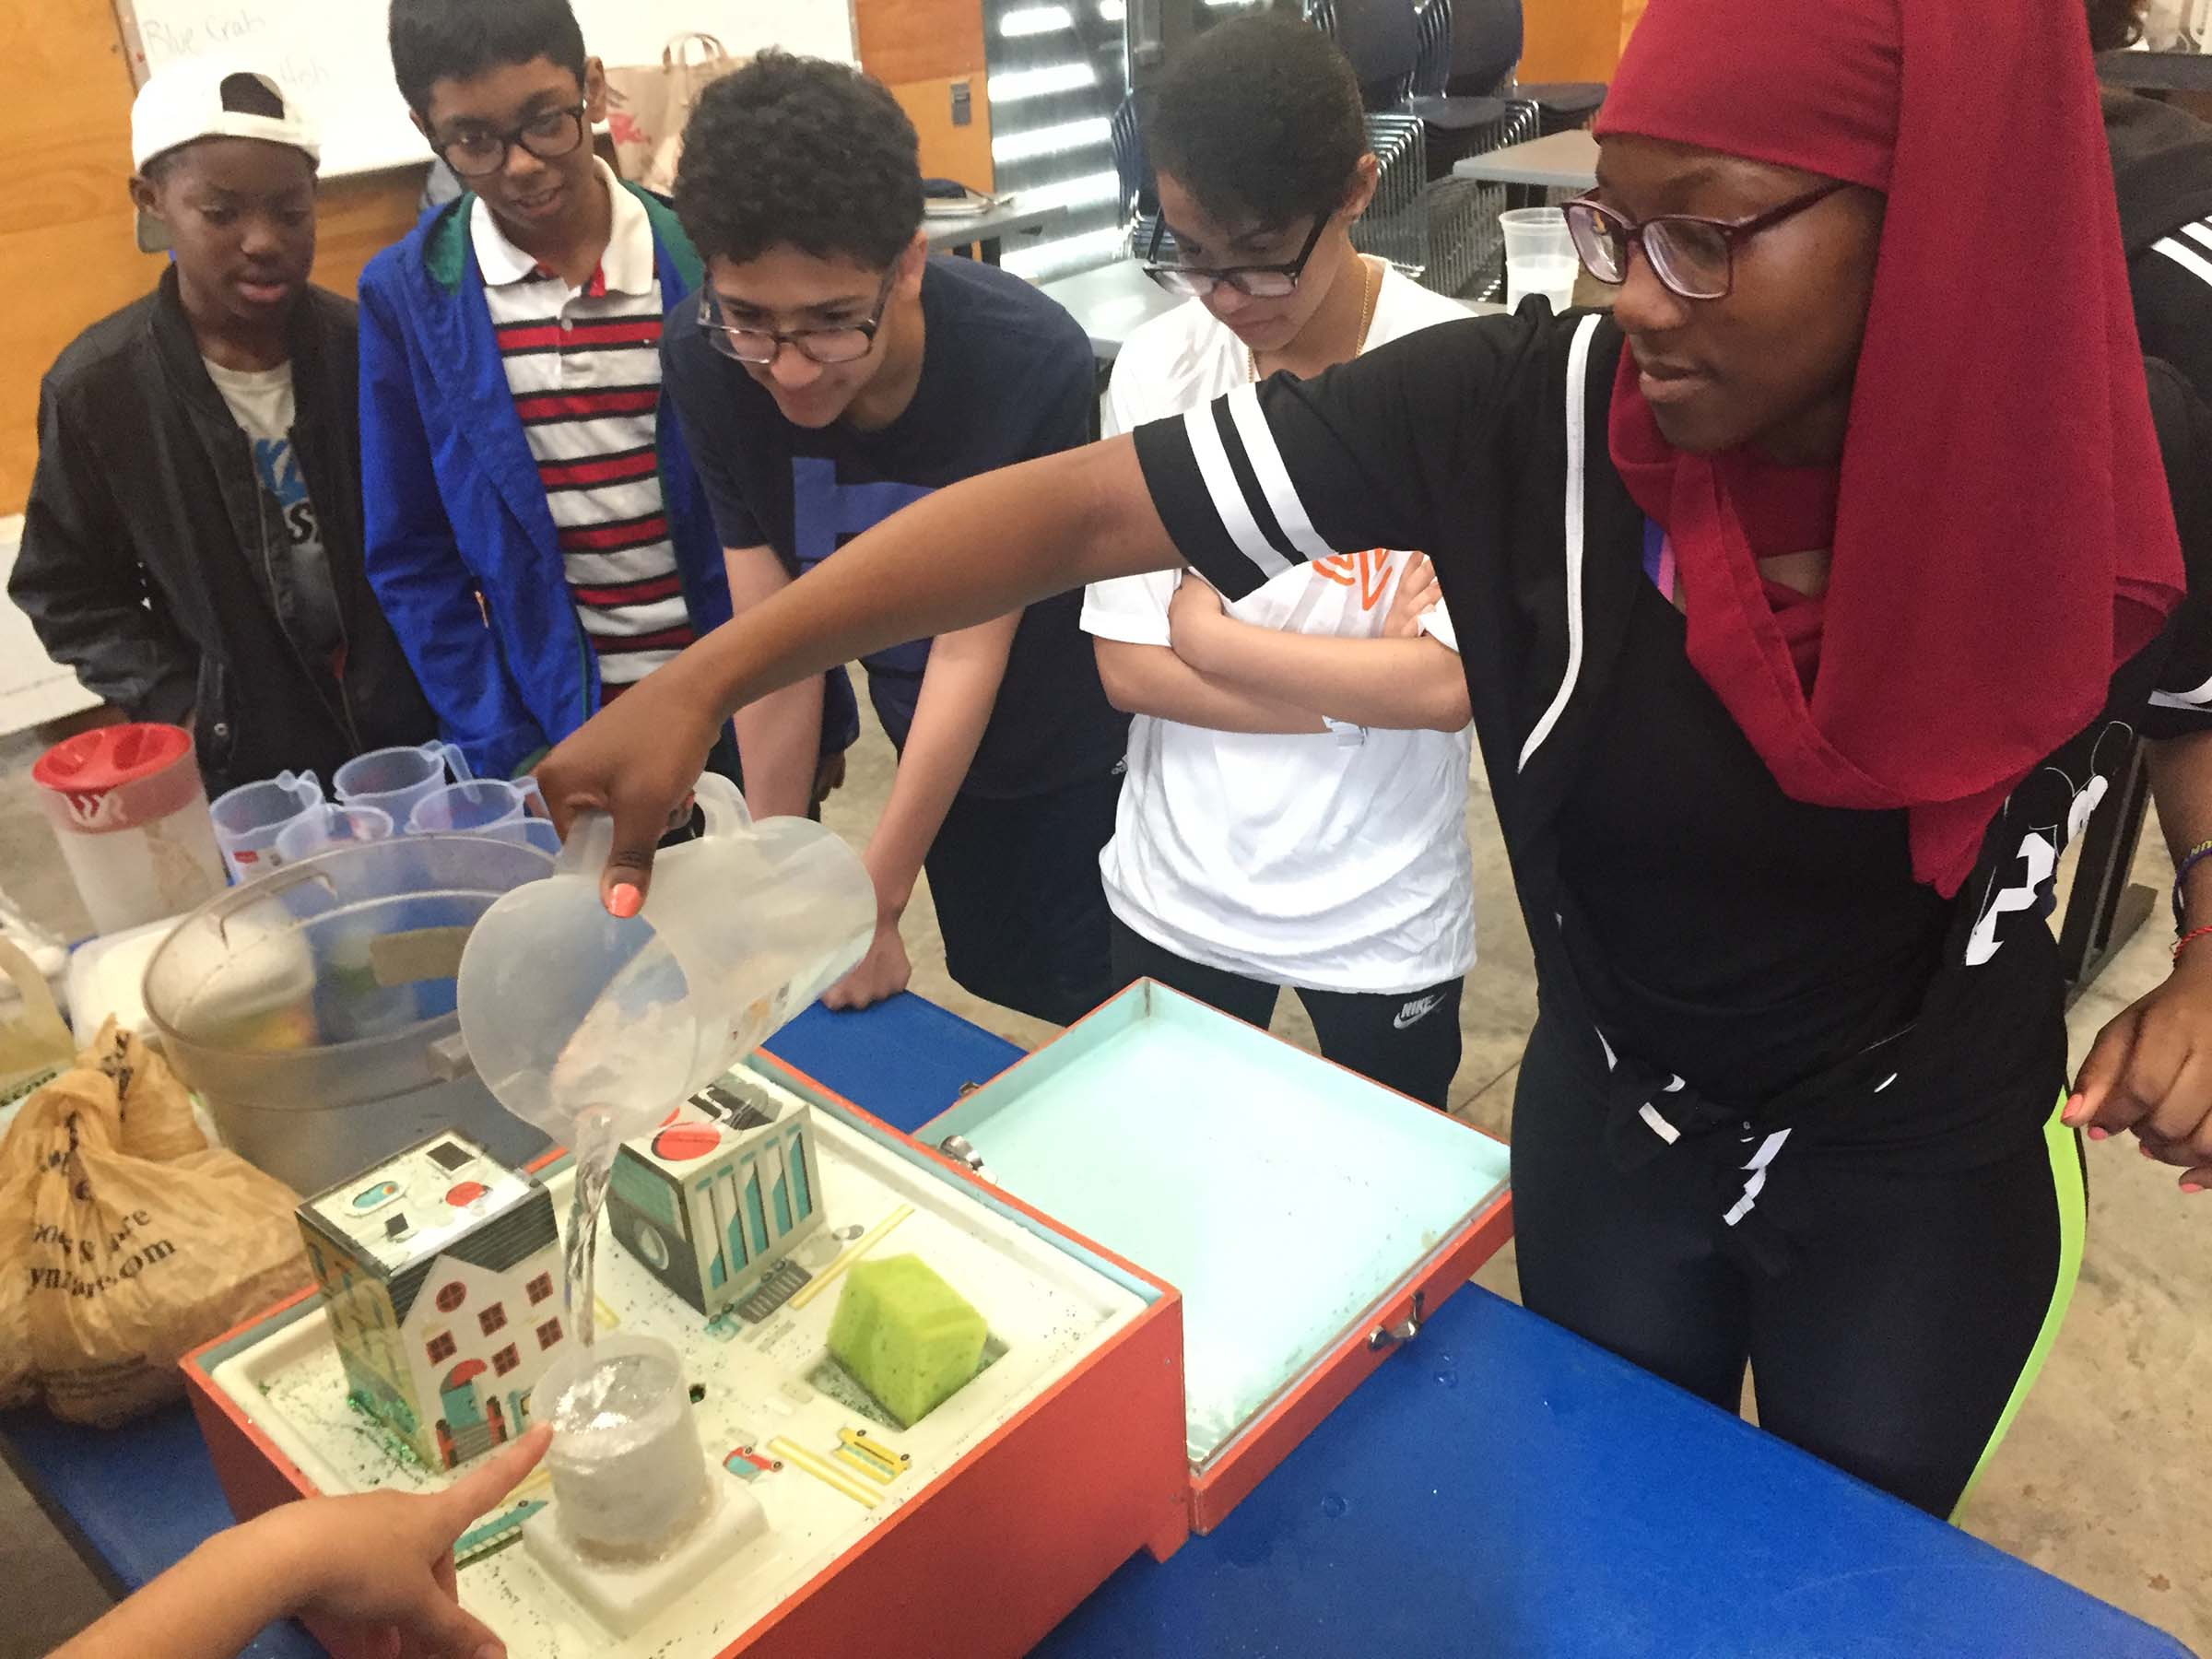 Students understand how to help curb pollution